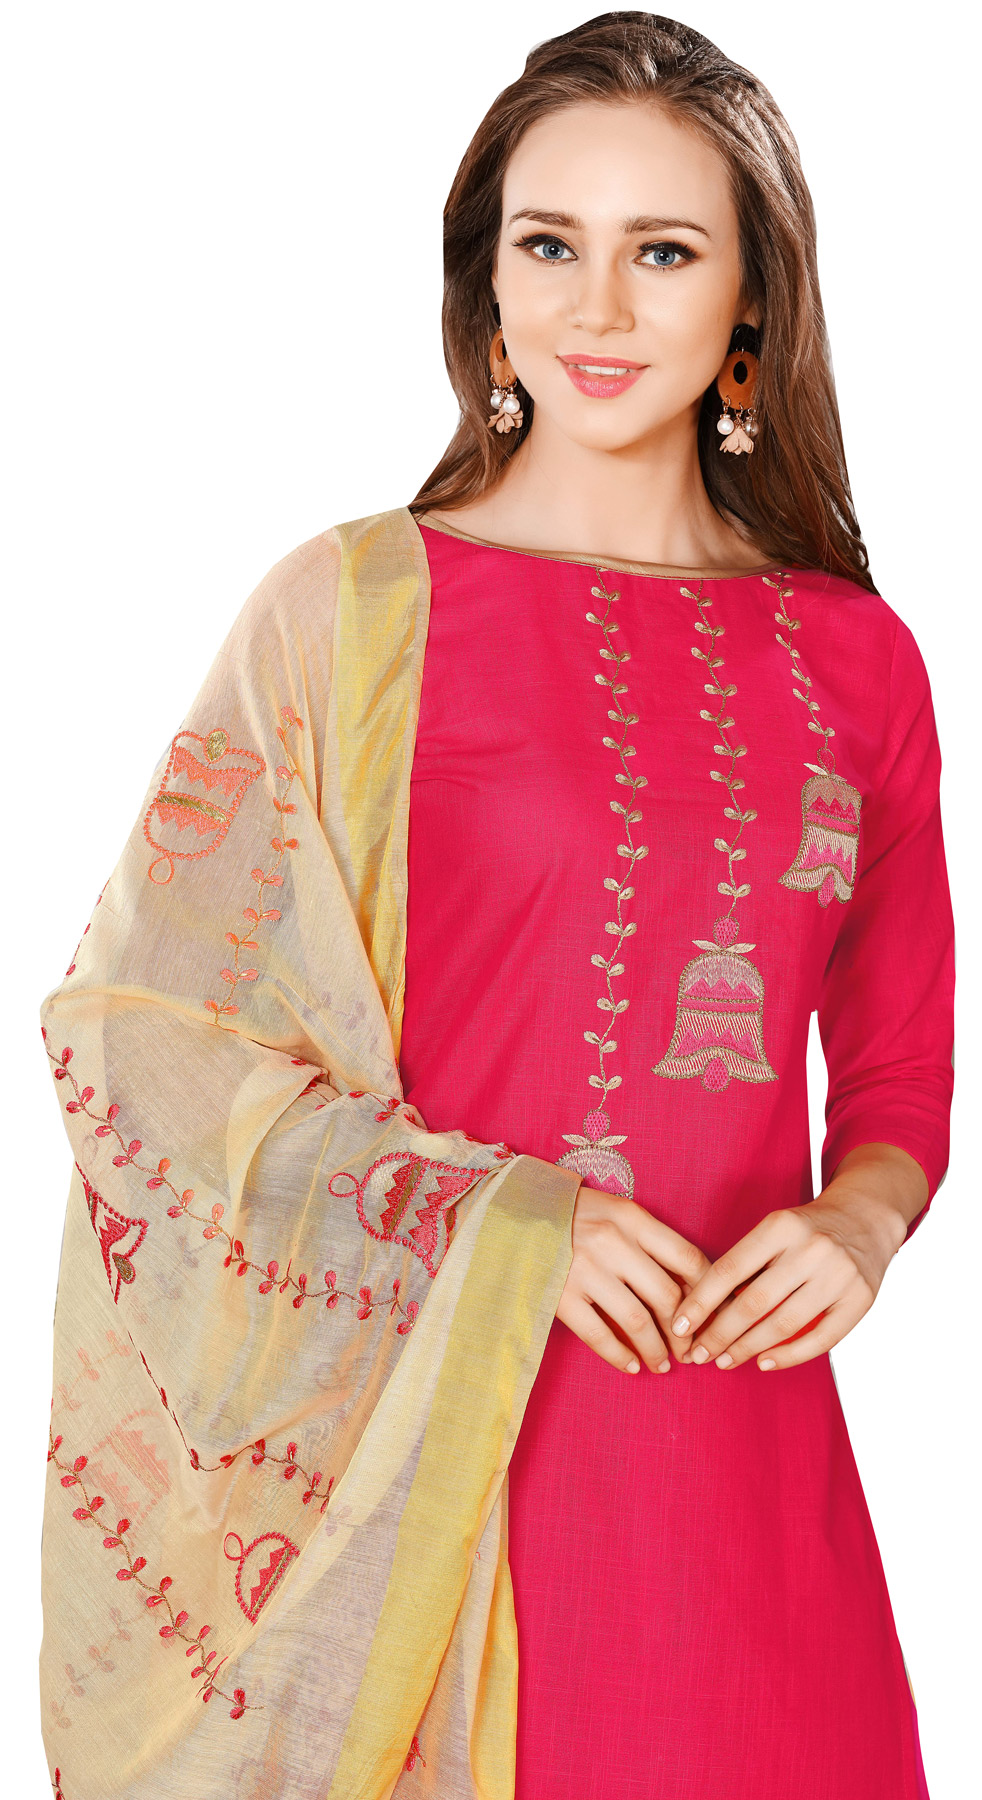 Blooming Pink-Beige Colored Embroidered Chanderi Cotton Dress Material